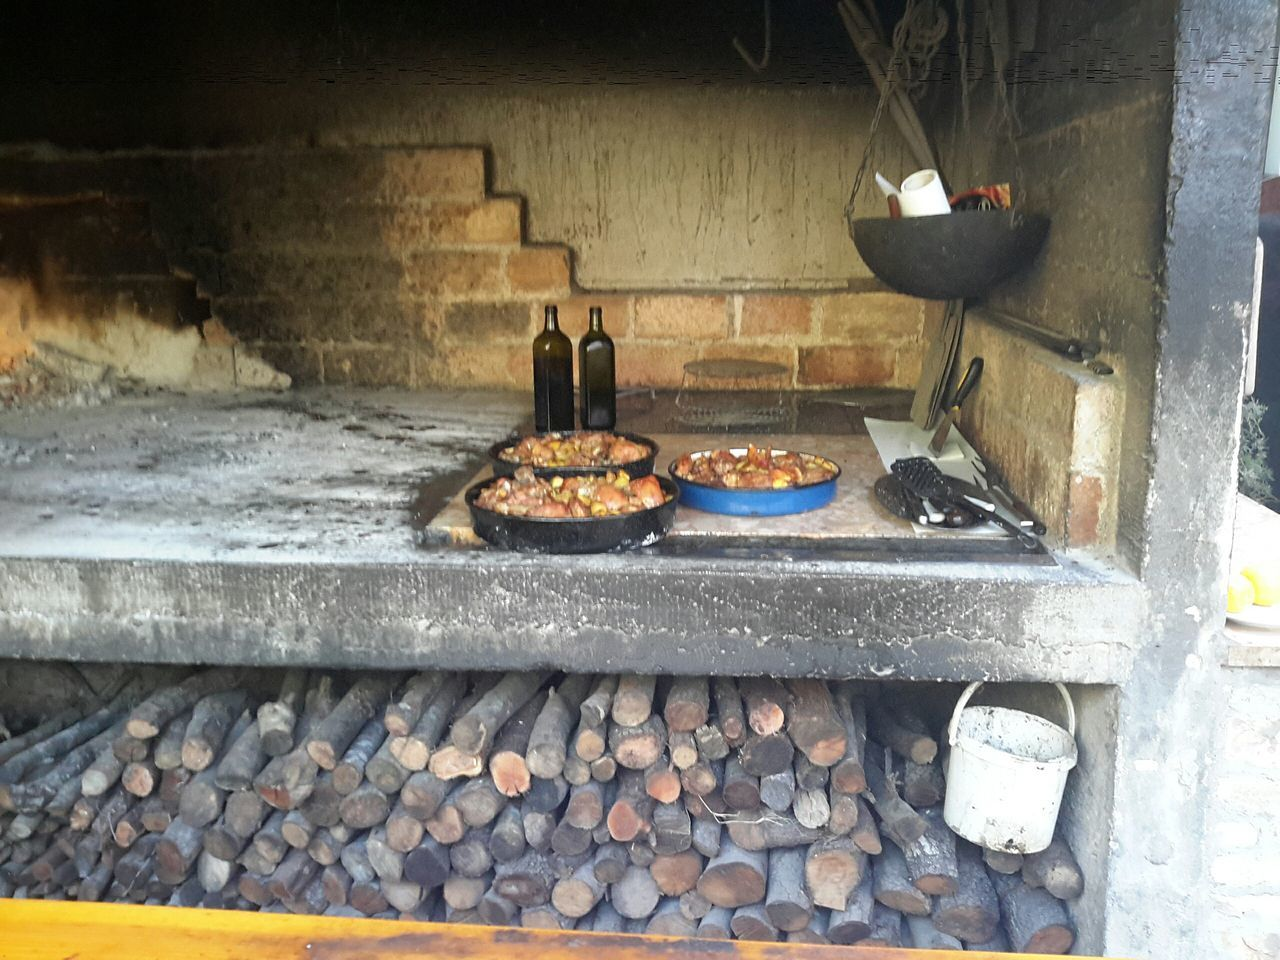 Peka Wood Oven - Island of Vis Peka Peka Wood Oven Open Air Cooking Cooked Under A Lid Island Of Vis Croatia Hrvatska At The Beach Bbq Bbq Time Alfresco Eating Alfresco Dining Wood Oven Village Life Village Living Traditional Traditional Style CookingRustic Style Food